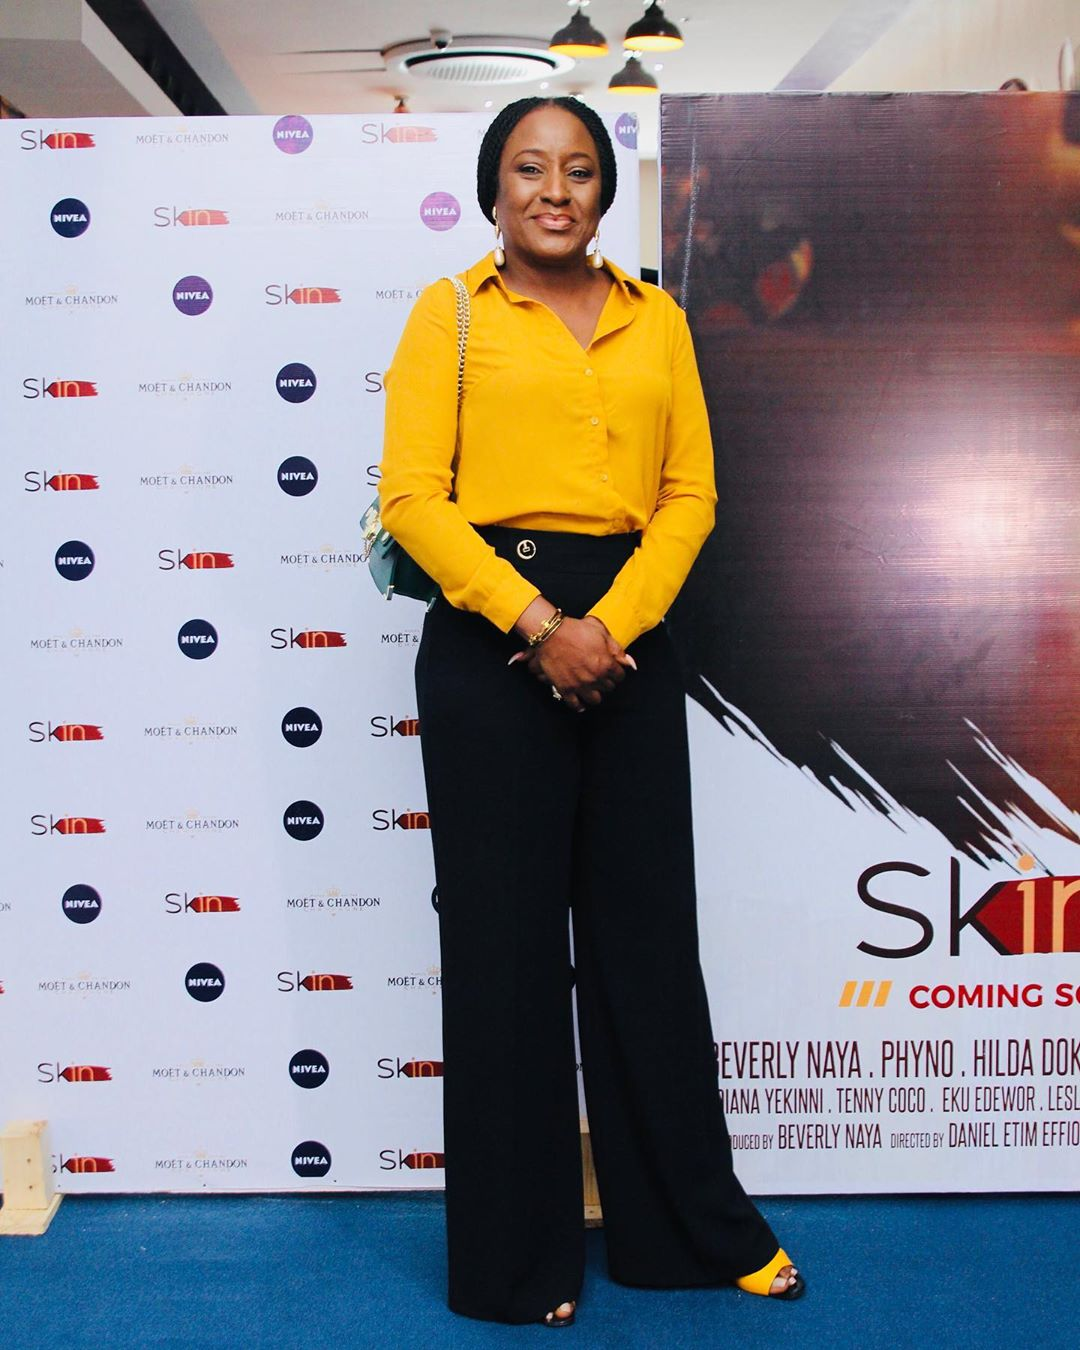 "16 - Omotola Jalade-Ekeinde, Mo Abudu, others spotted at the Premiere of Beverly Naya's Documentary ""Skin"""